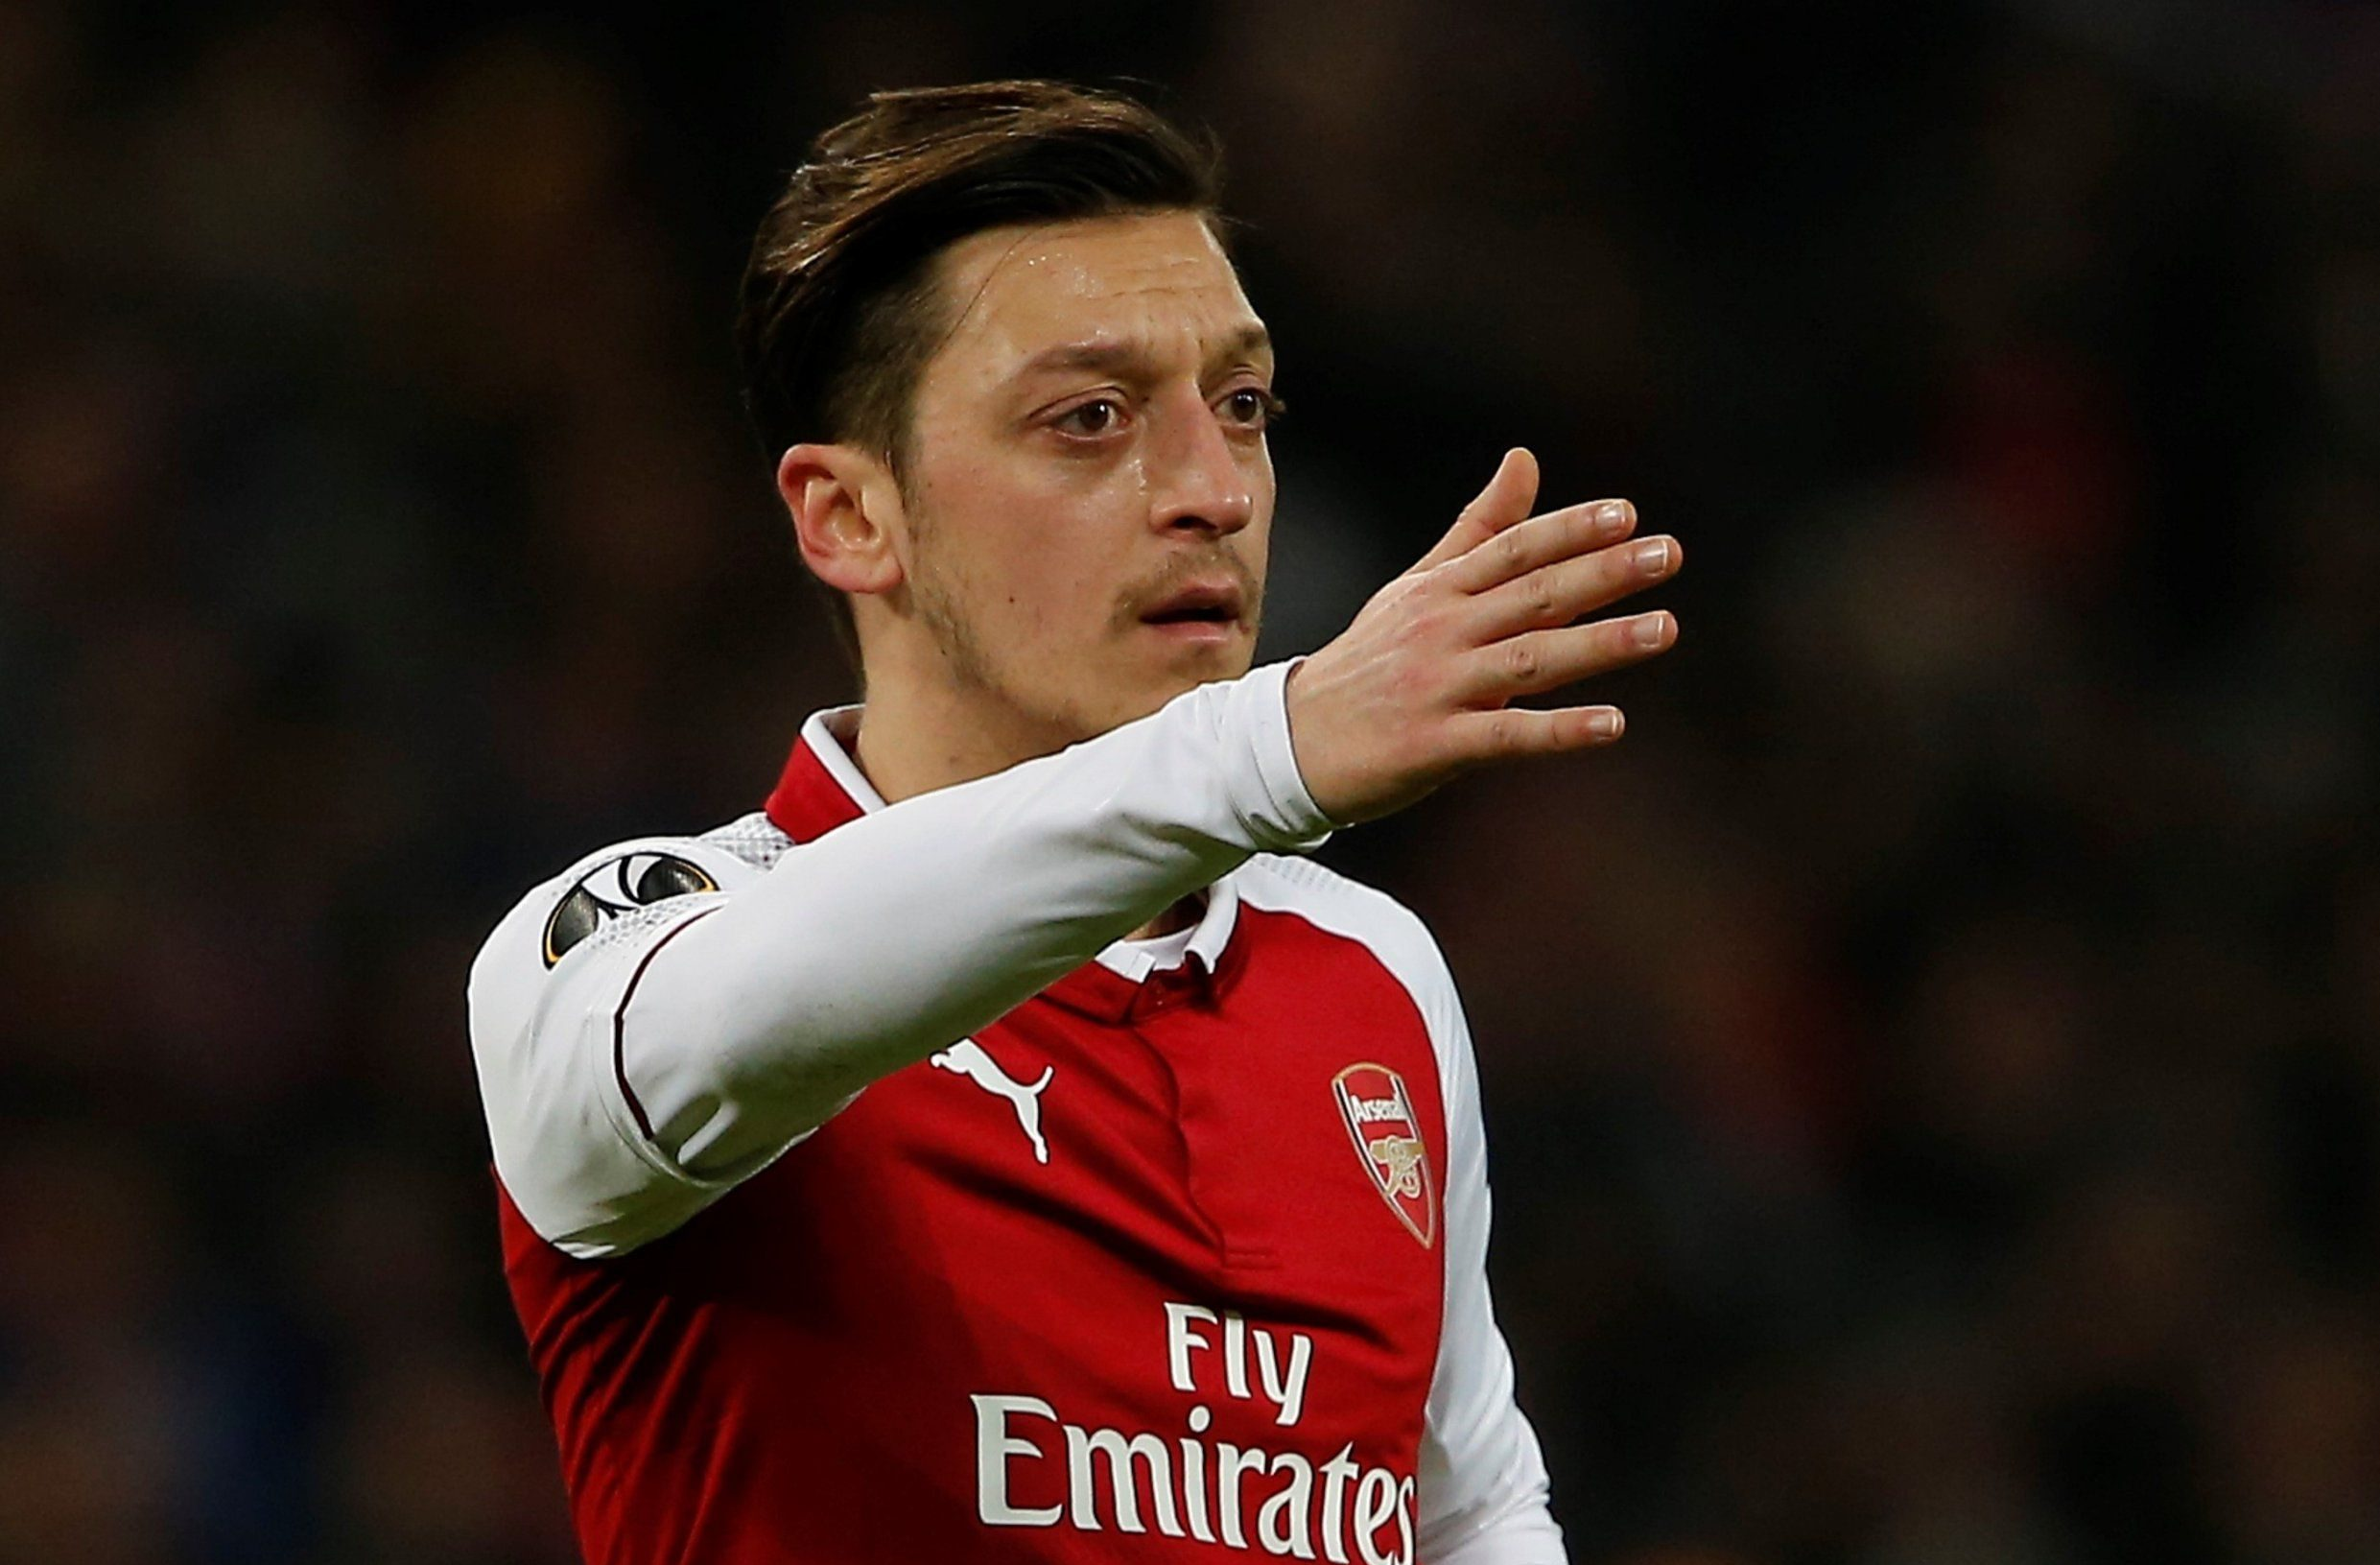 MOSCOW, RUSSIA - APRIL 12: Mesut Ozil of Arsenal is seen during the UEFA Europa League Quarter-finals second leg match between CSKA Moscow and Arsenal at CSKA VEB Arena in Moscow, Russia on April 12, 2018. (Photo by Sefa Karacan/Anadolu Agency/Getty Images)